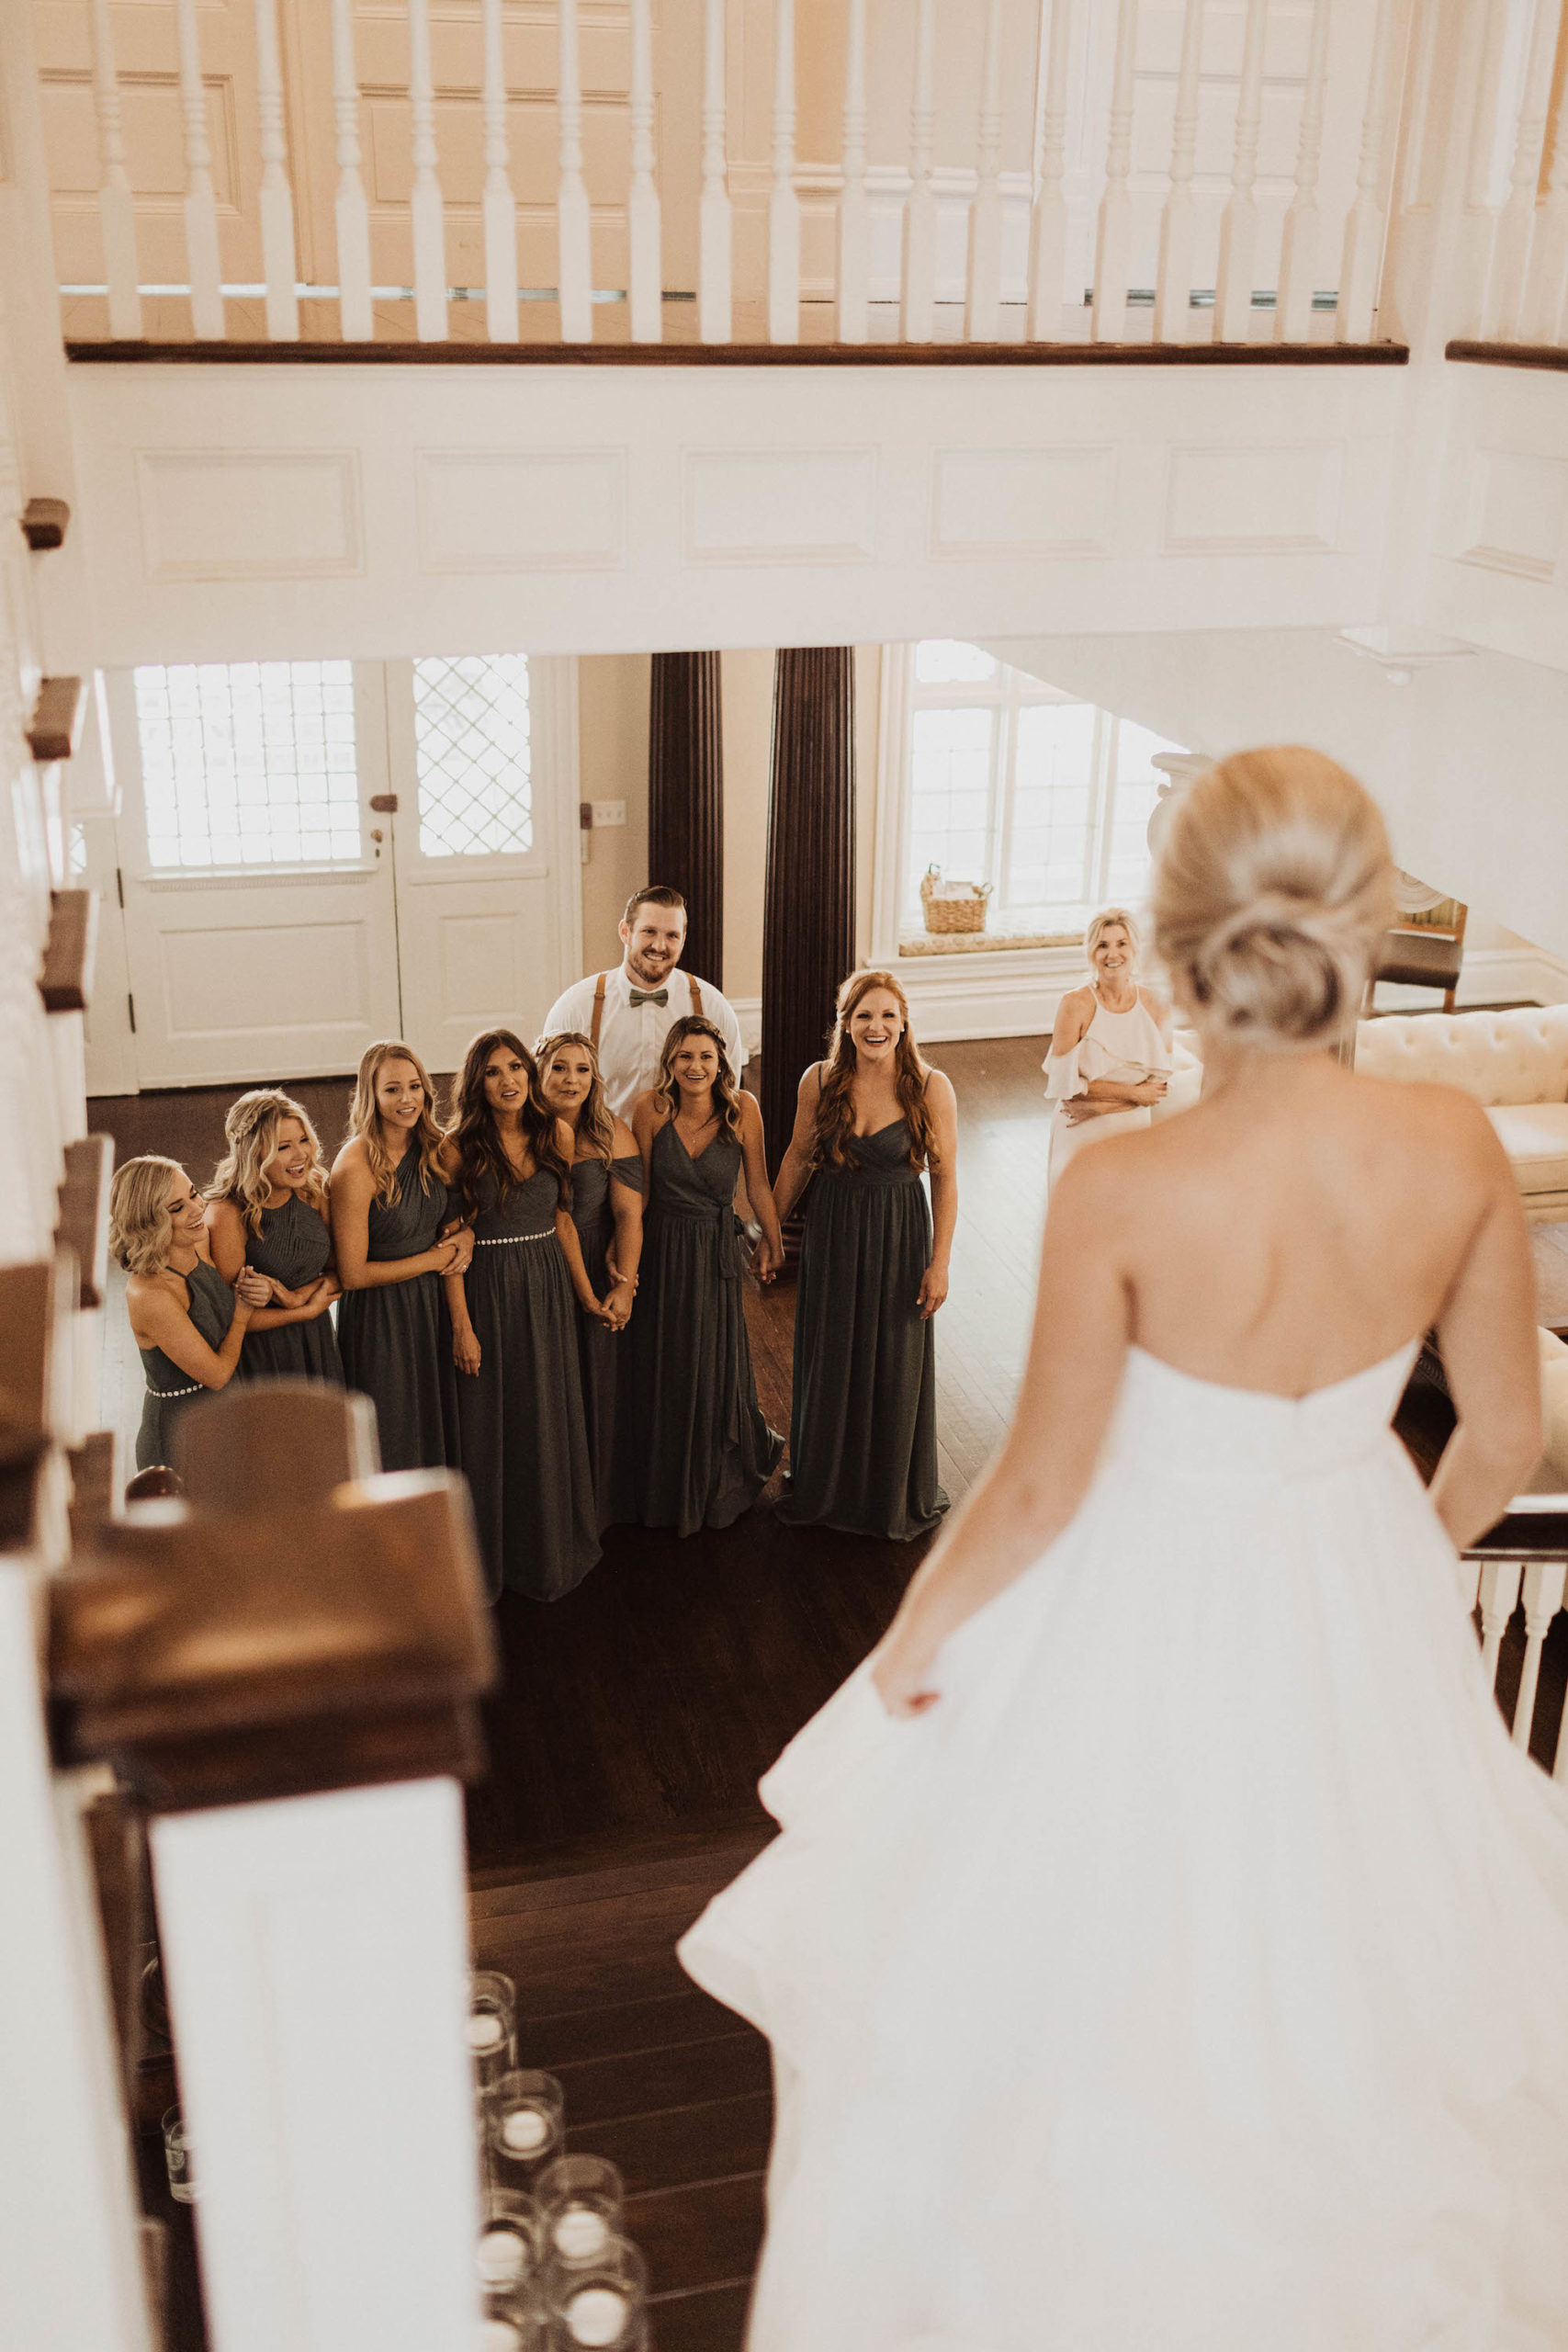 Tampa Bay Bridal Party First Look Wedding Portrait with Bride, Bridesmaids Wearing Mix and Match Green Dresses